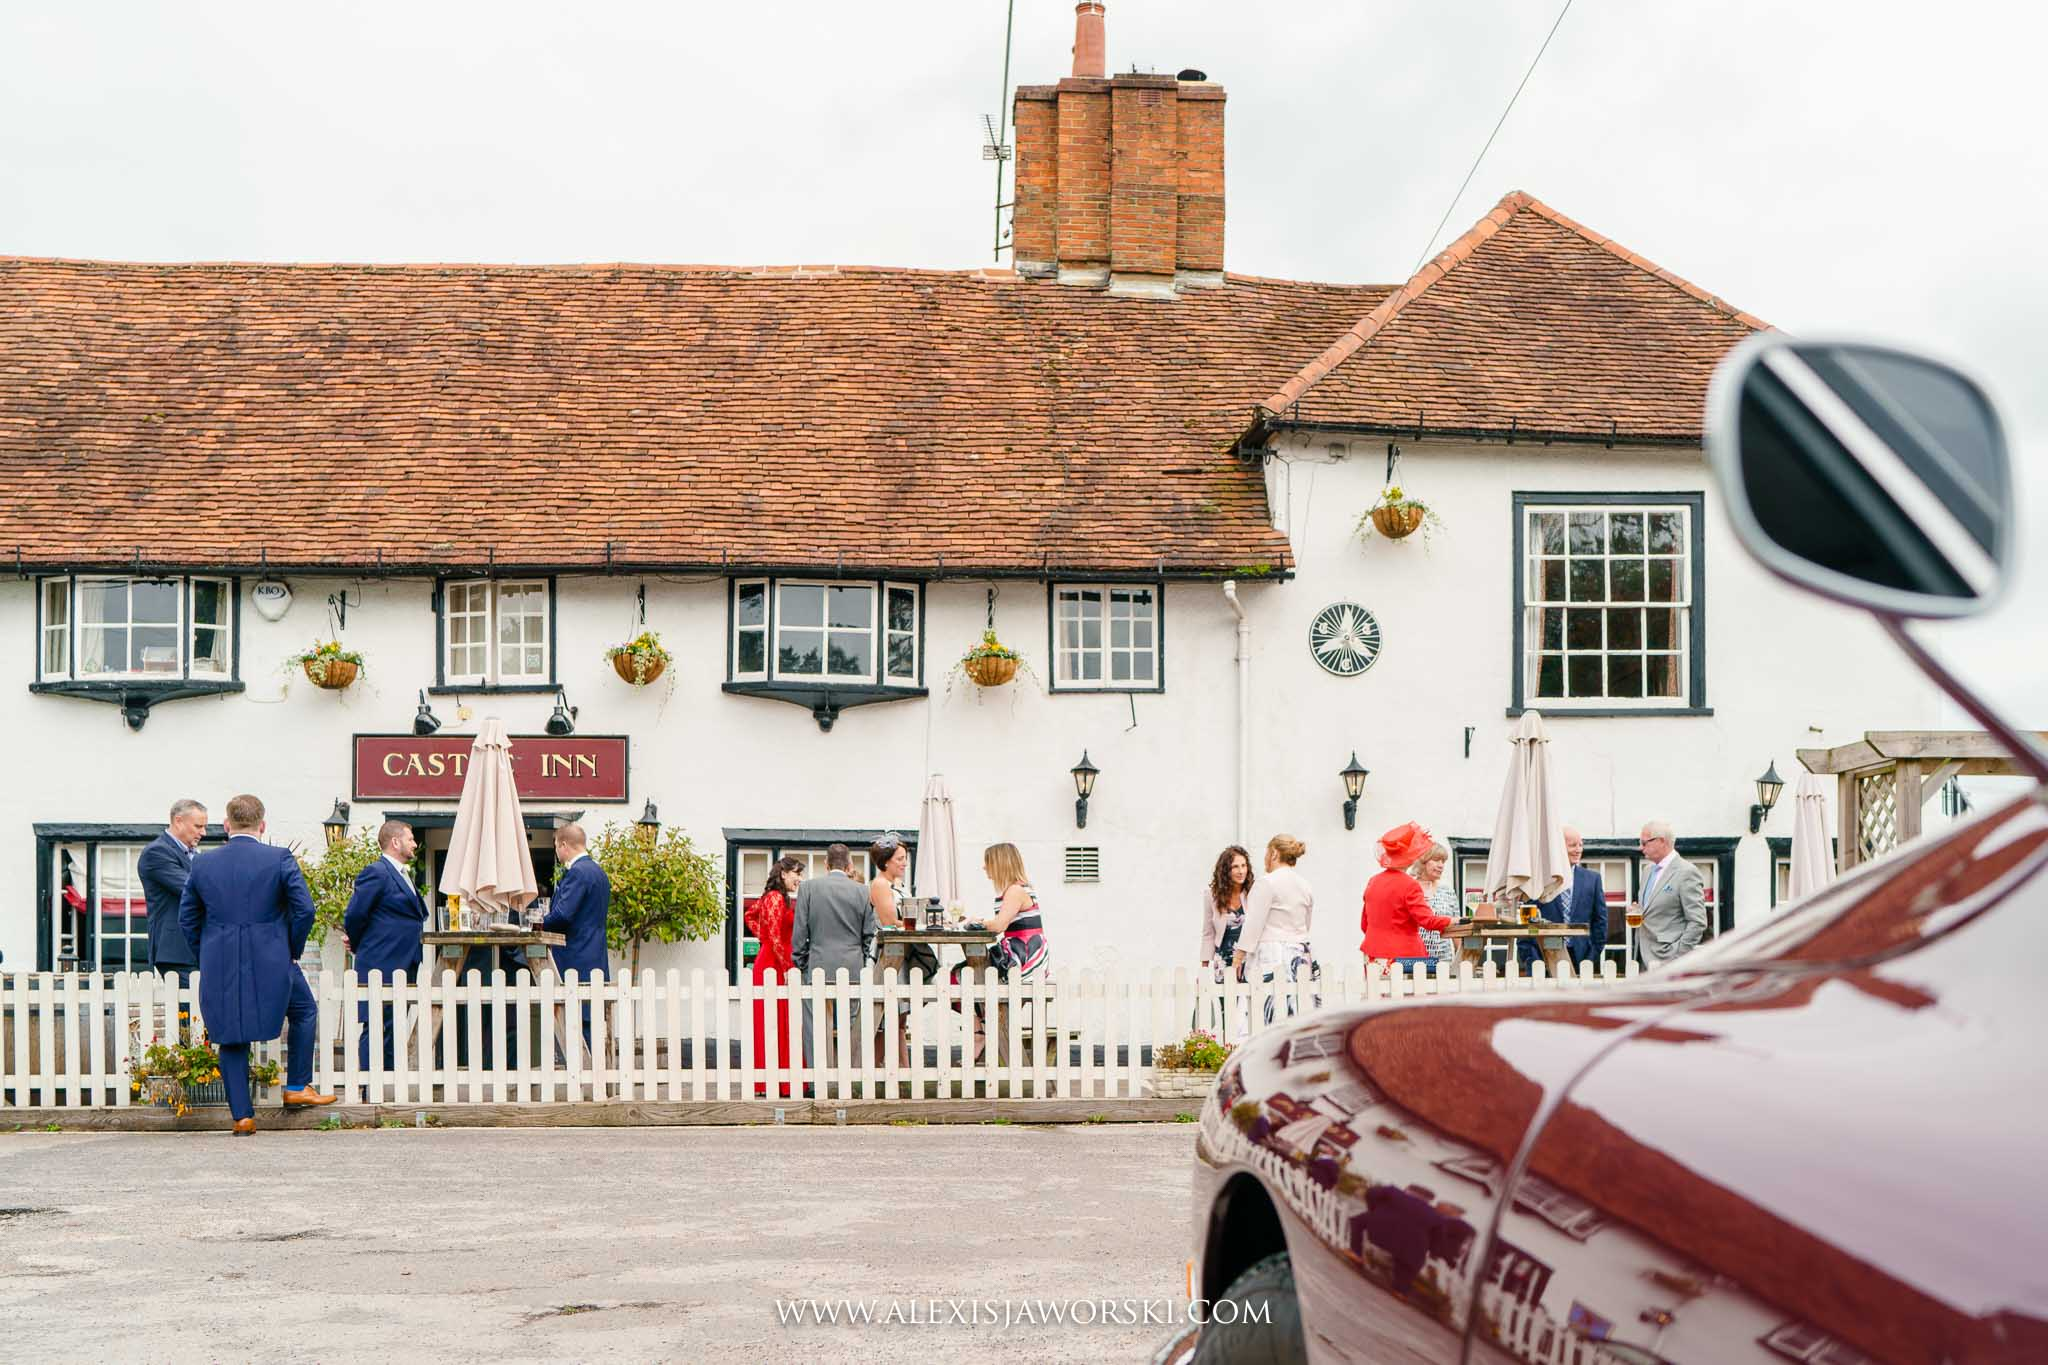 guests having a drink at the pub